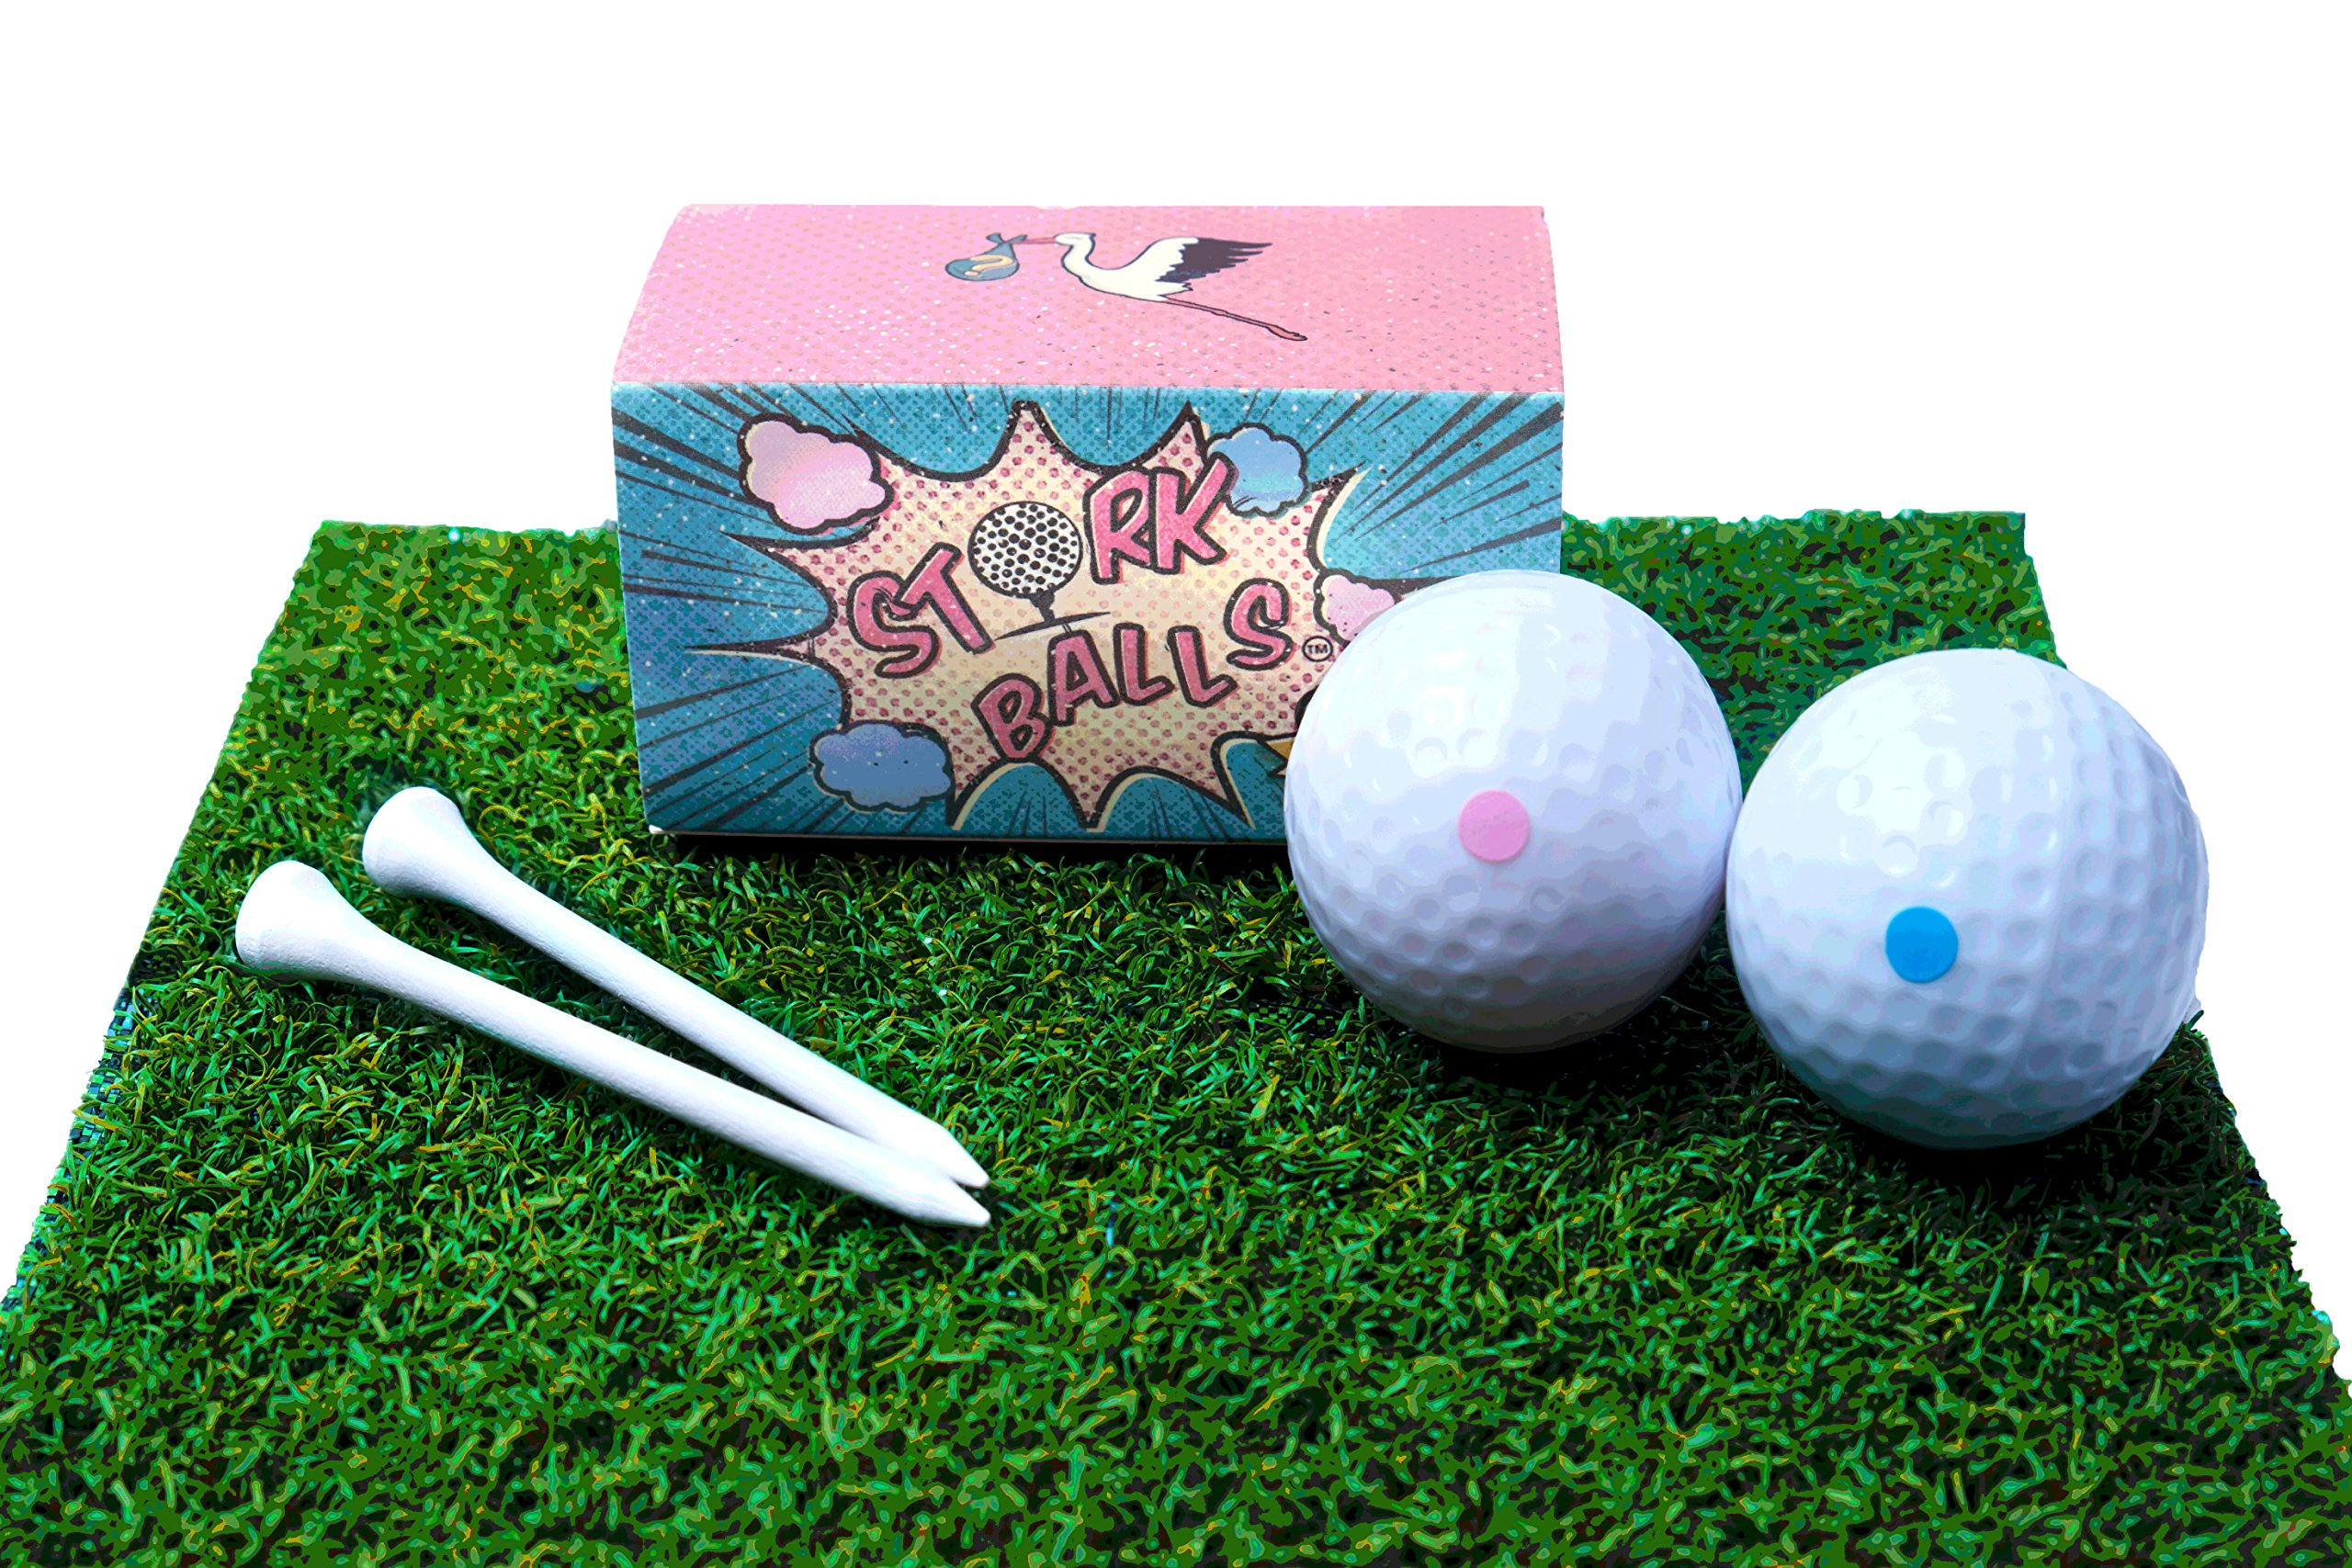 Gender Reveal Golf Balls Exploding- Gender Reveal Party, For Golf Enthusiasts, 1 Blue Golf Ball and 1 Pink Golf Ball, 2 Golf Tees Included!, Surprise Fun for Expecting Mom and Dad